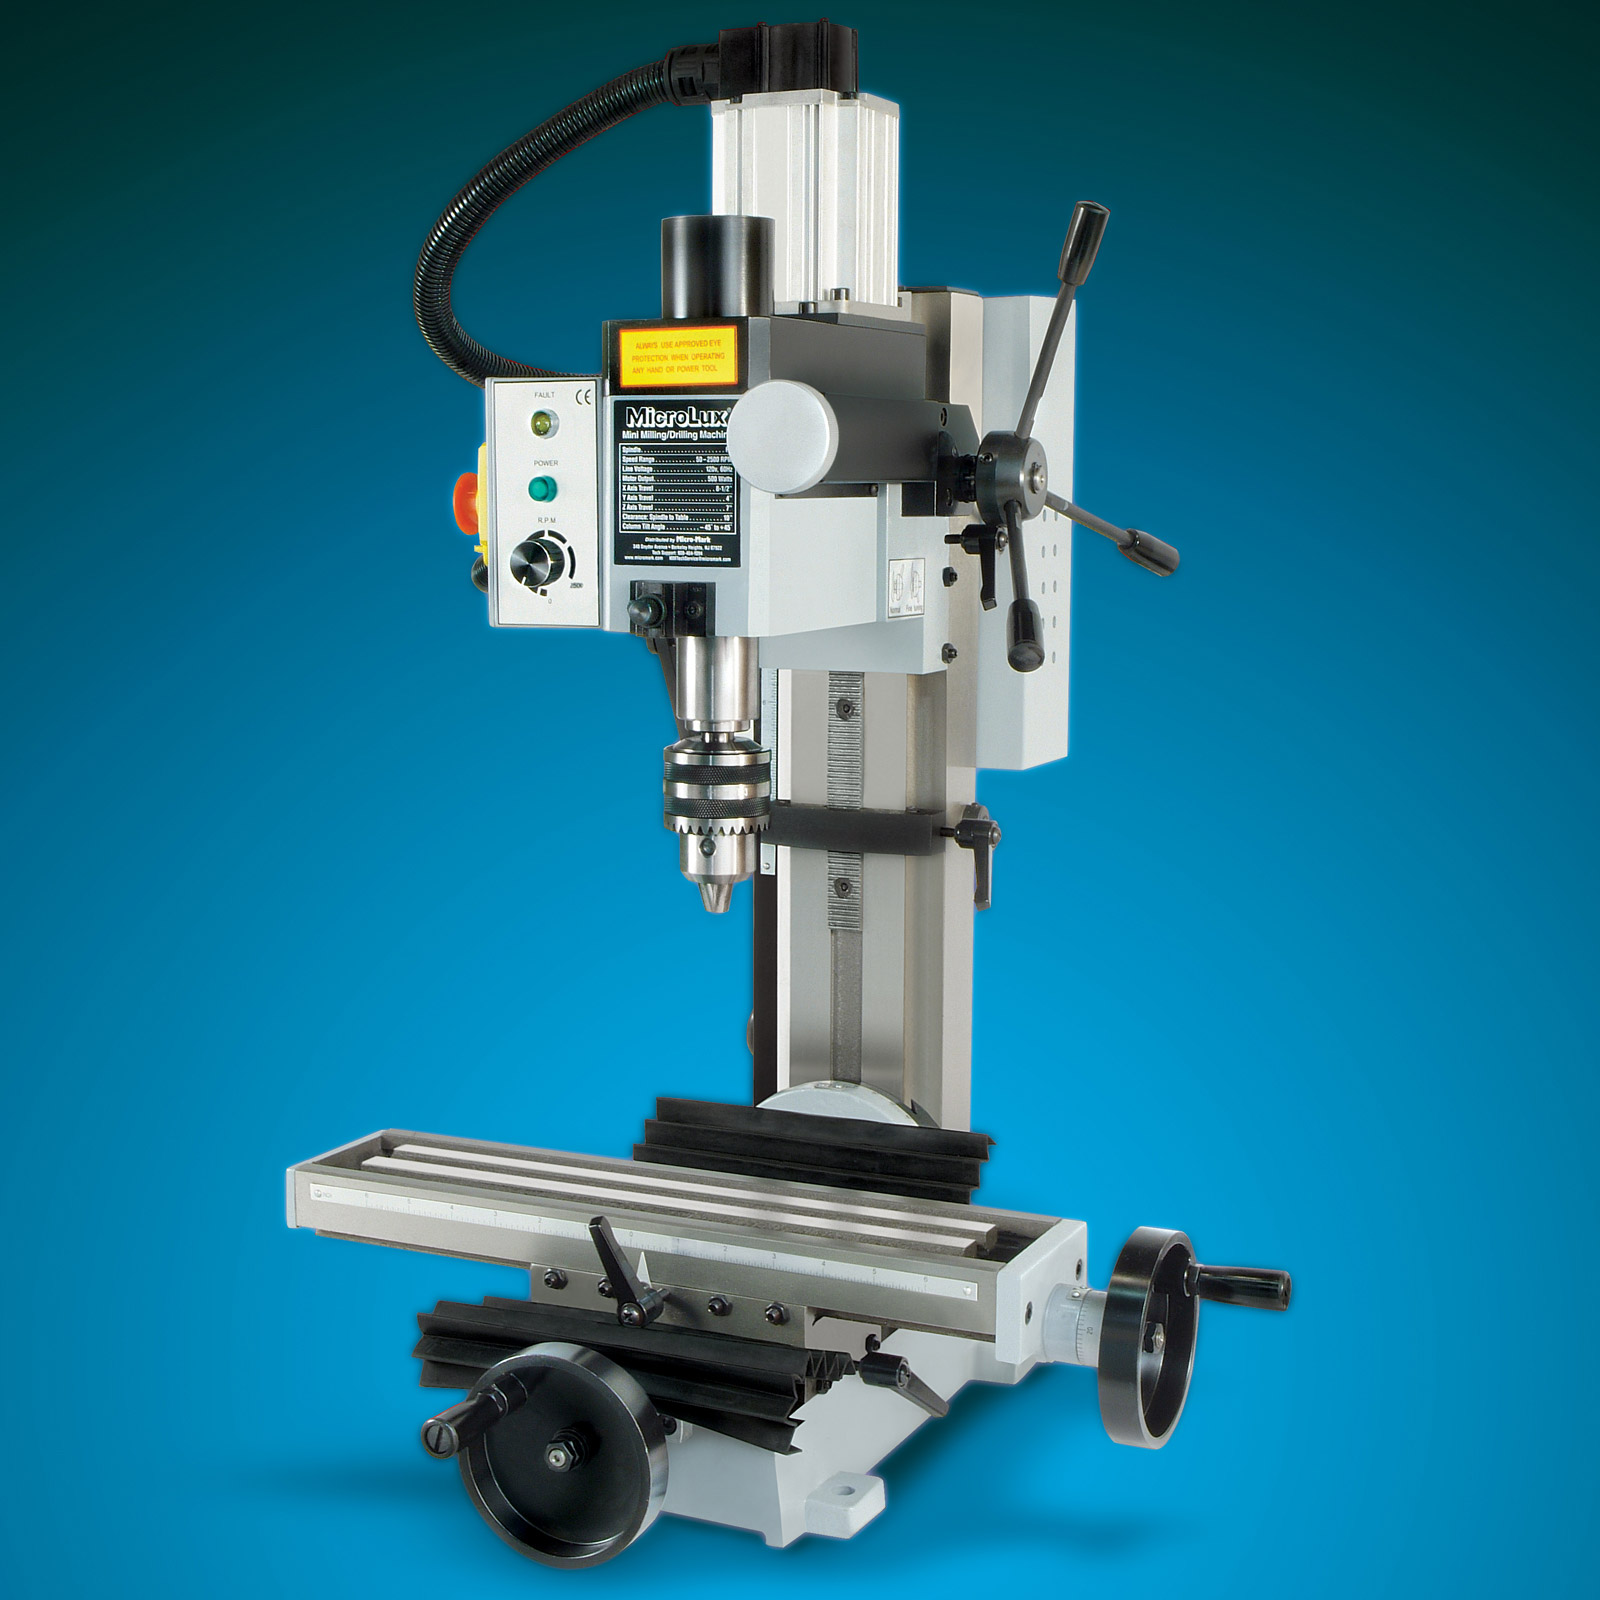 hight resolution of microlux high precision heavy duty r8 miniature milling machinemilling machine r8 500w